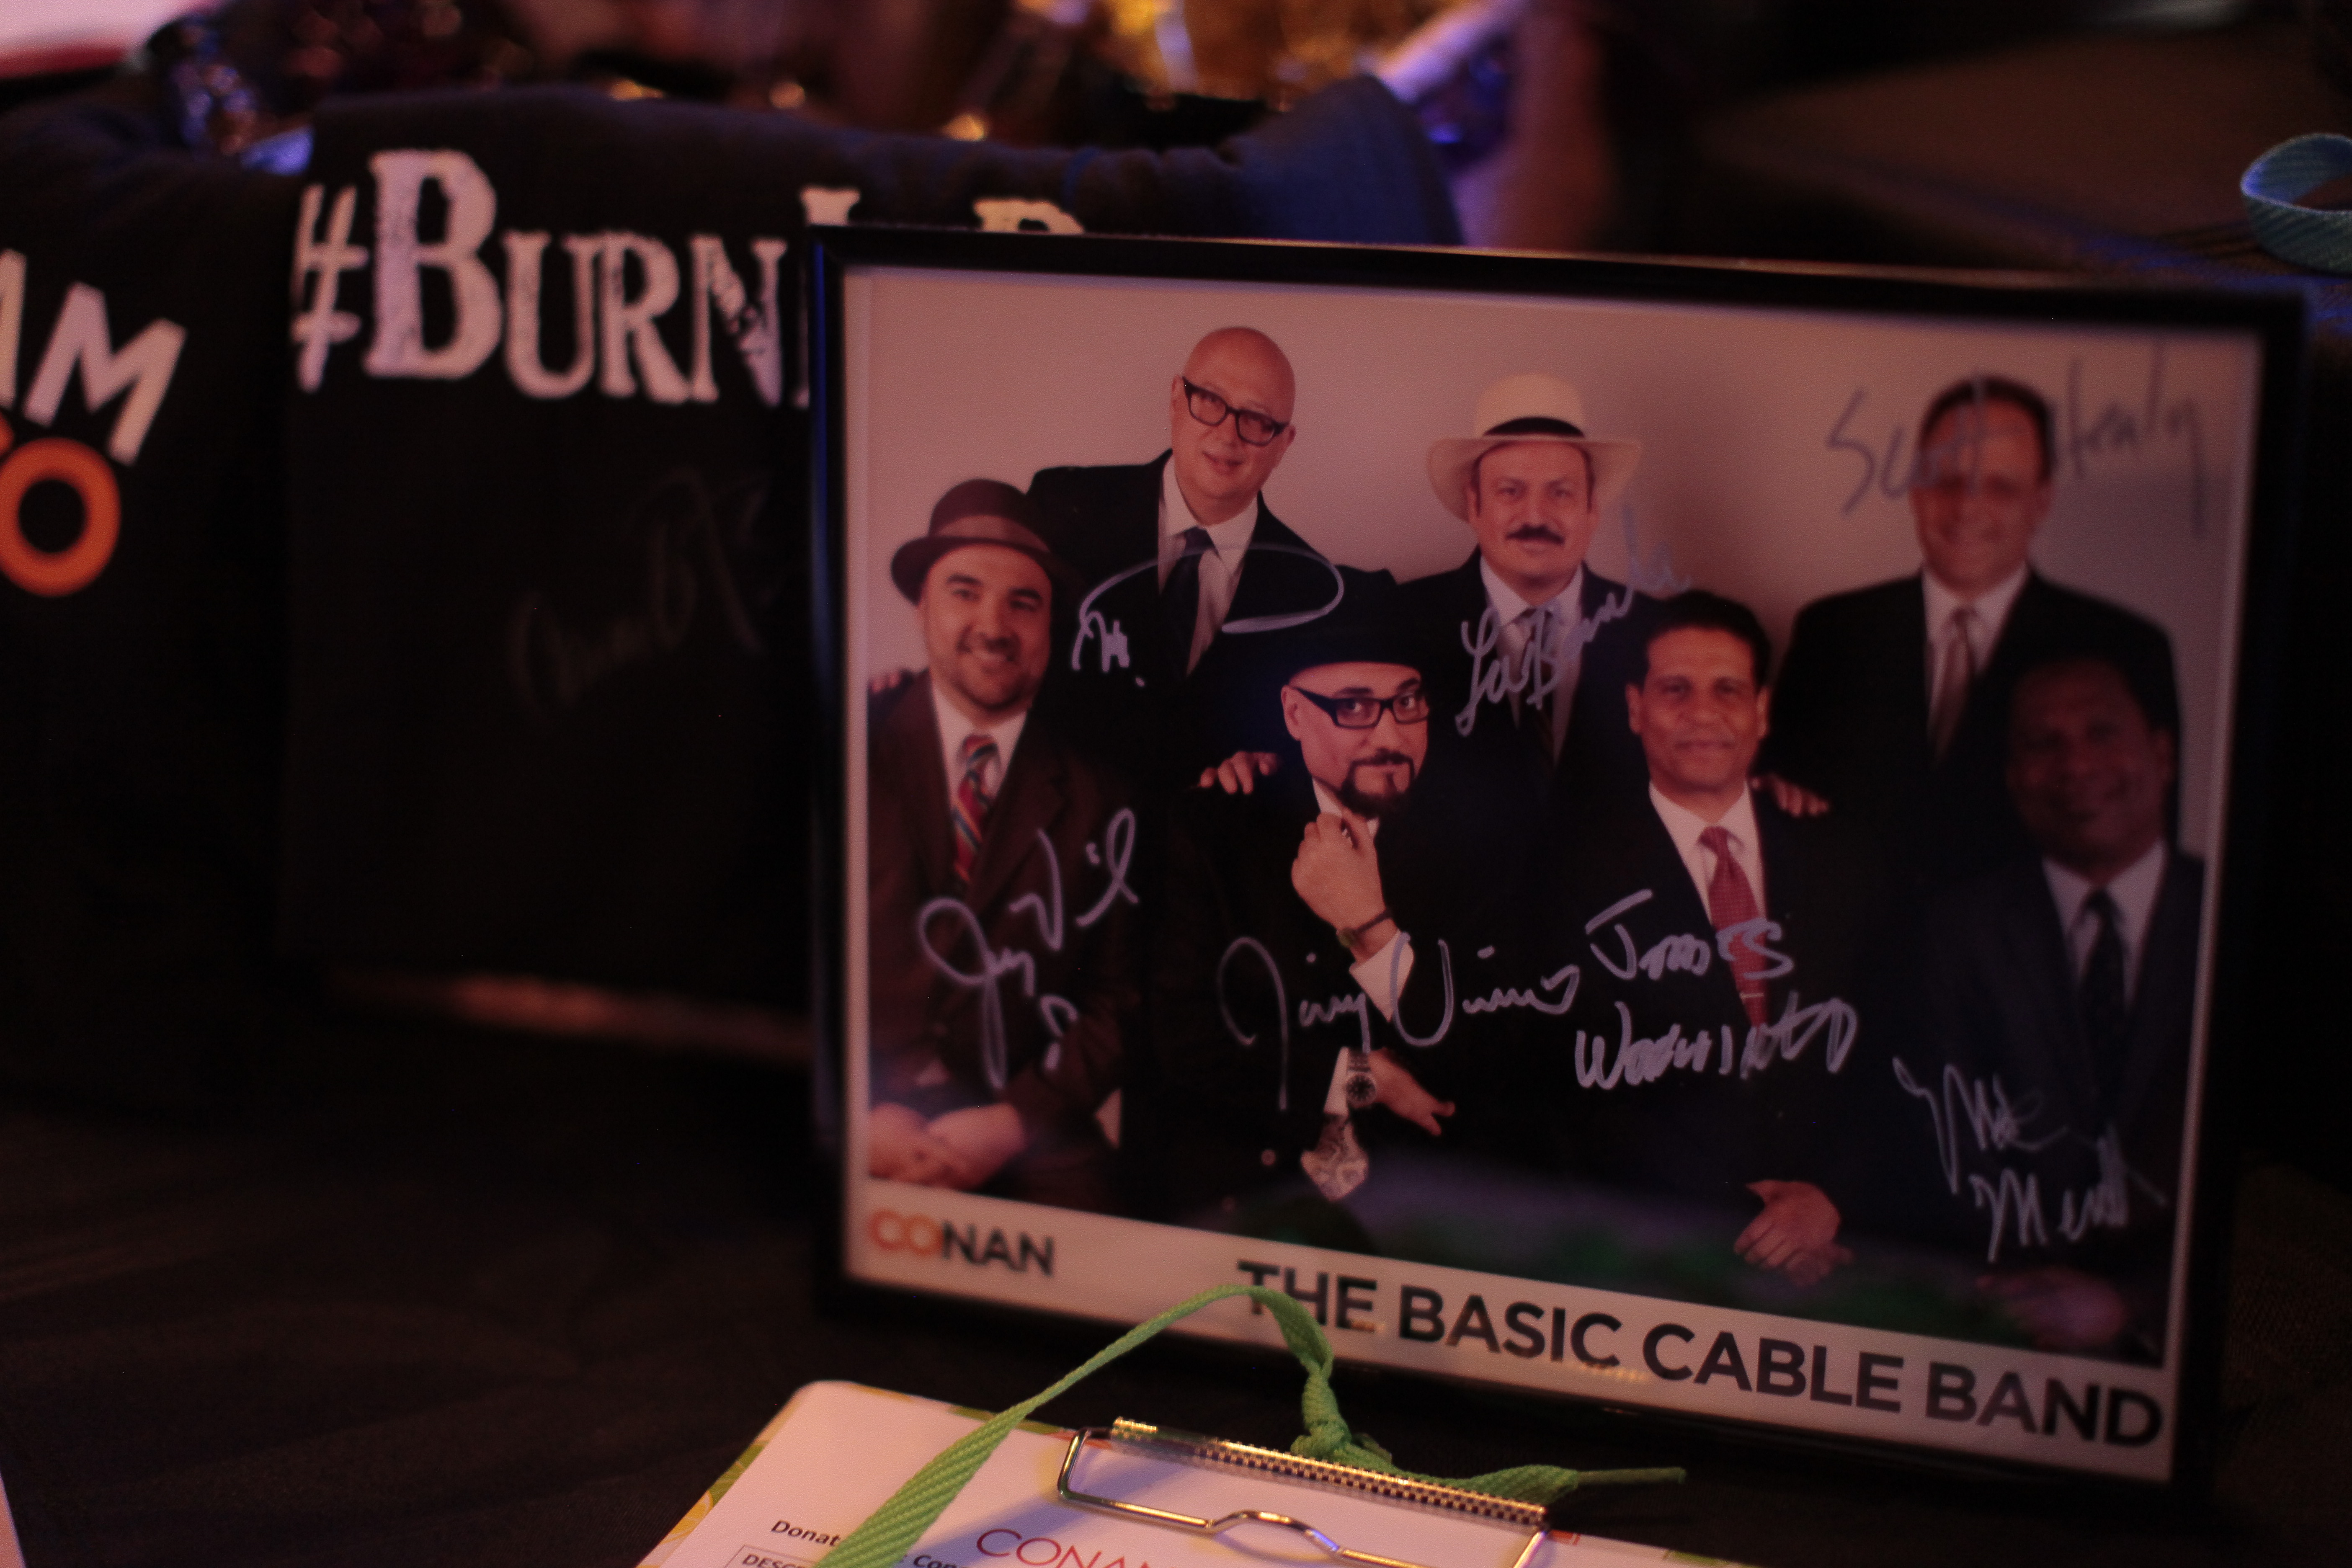 The Basic Cable Band signed photo